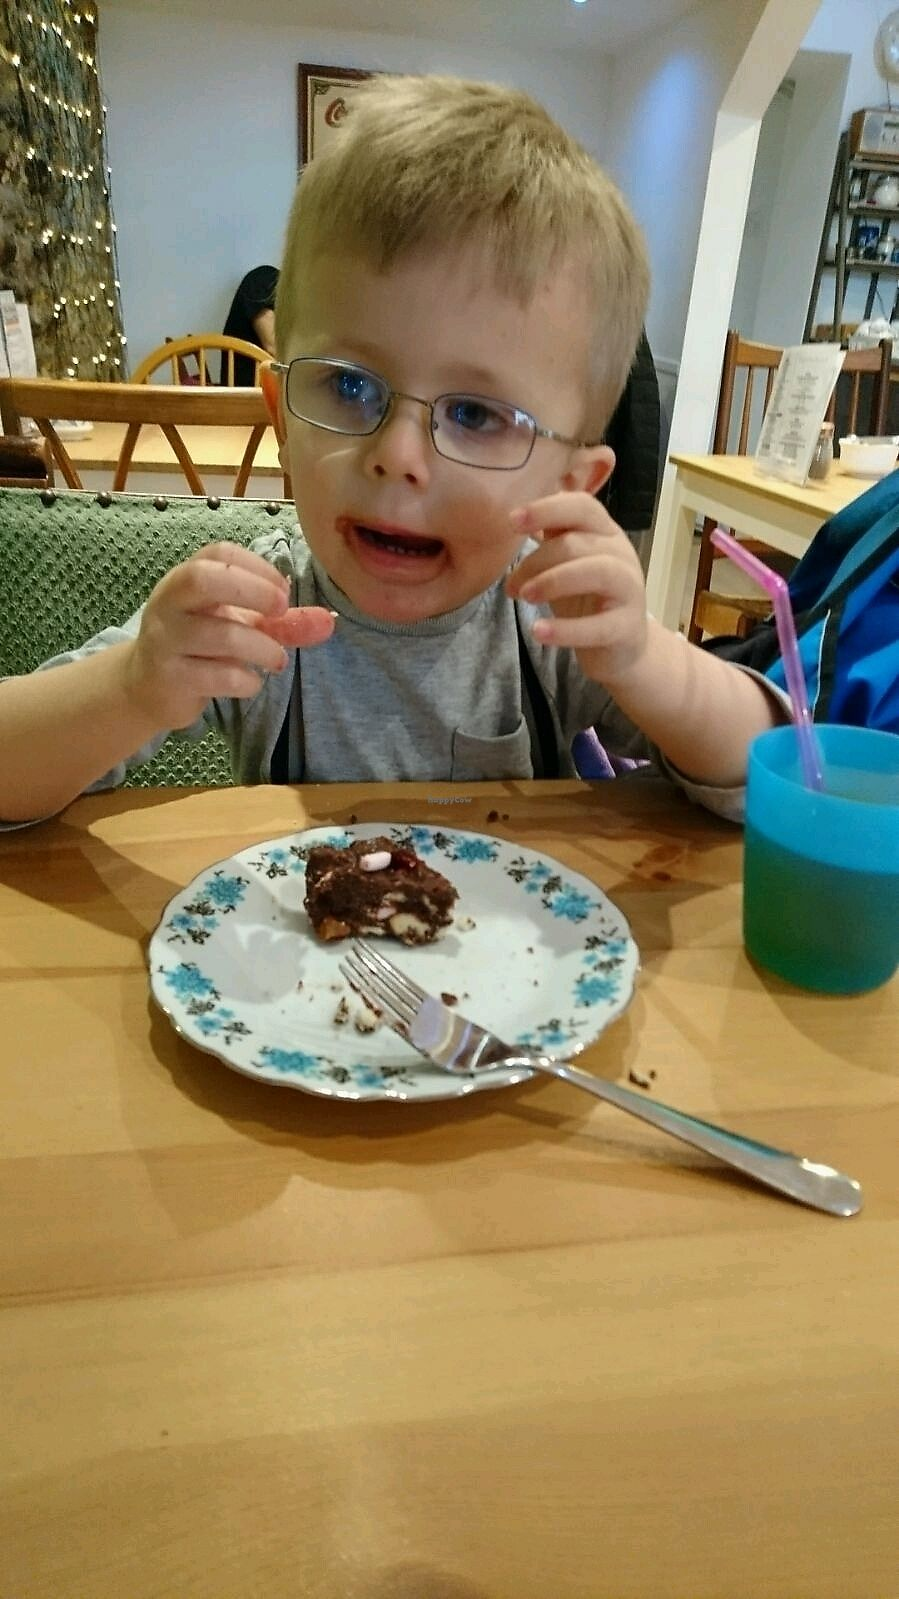 "Photo of The Orchard Cafe  by <a href=""/members/profile/WorthingSarah"">WorthingSarah</a> <br/>Rocky road is amazing! <br/> January 23, 2018  - <a href='/contact/abuse/image/98668/350057'>Report</a>"